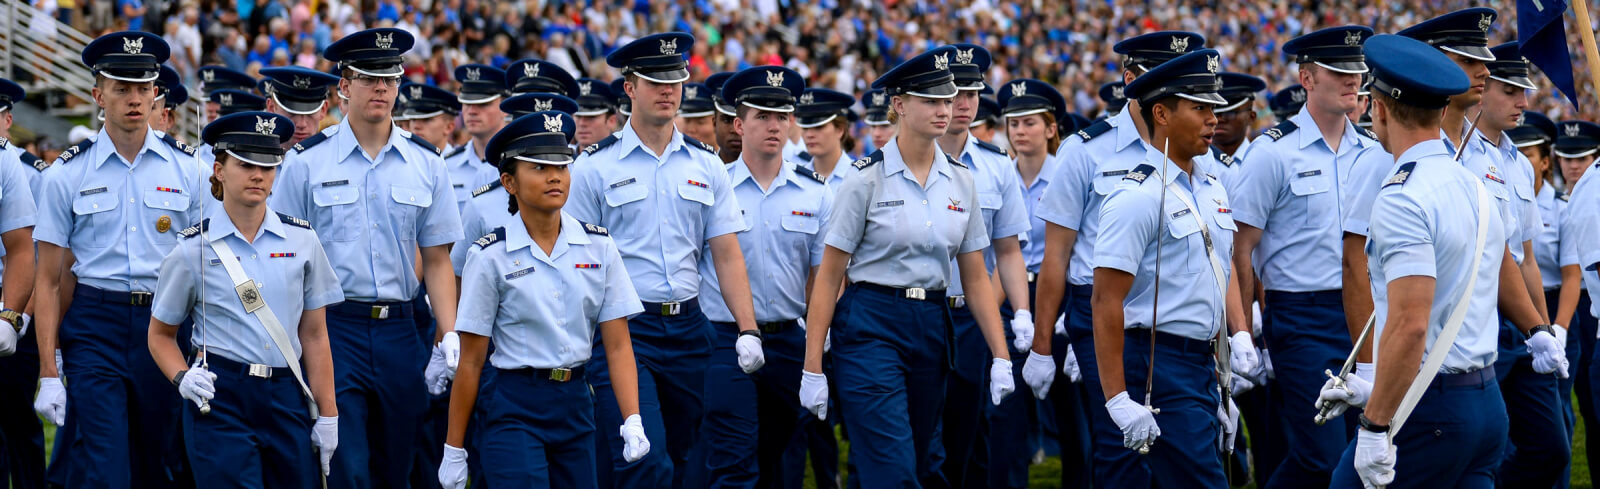 Cadets marching in parade